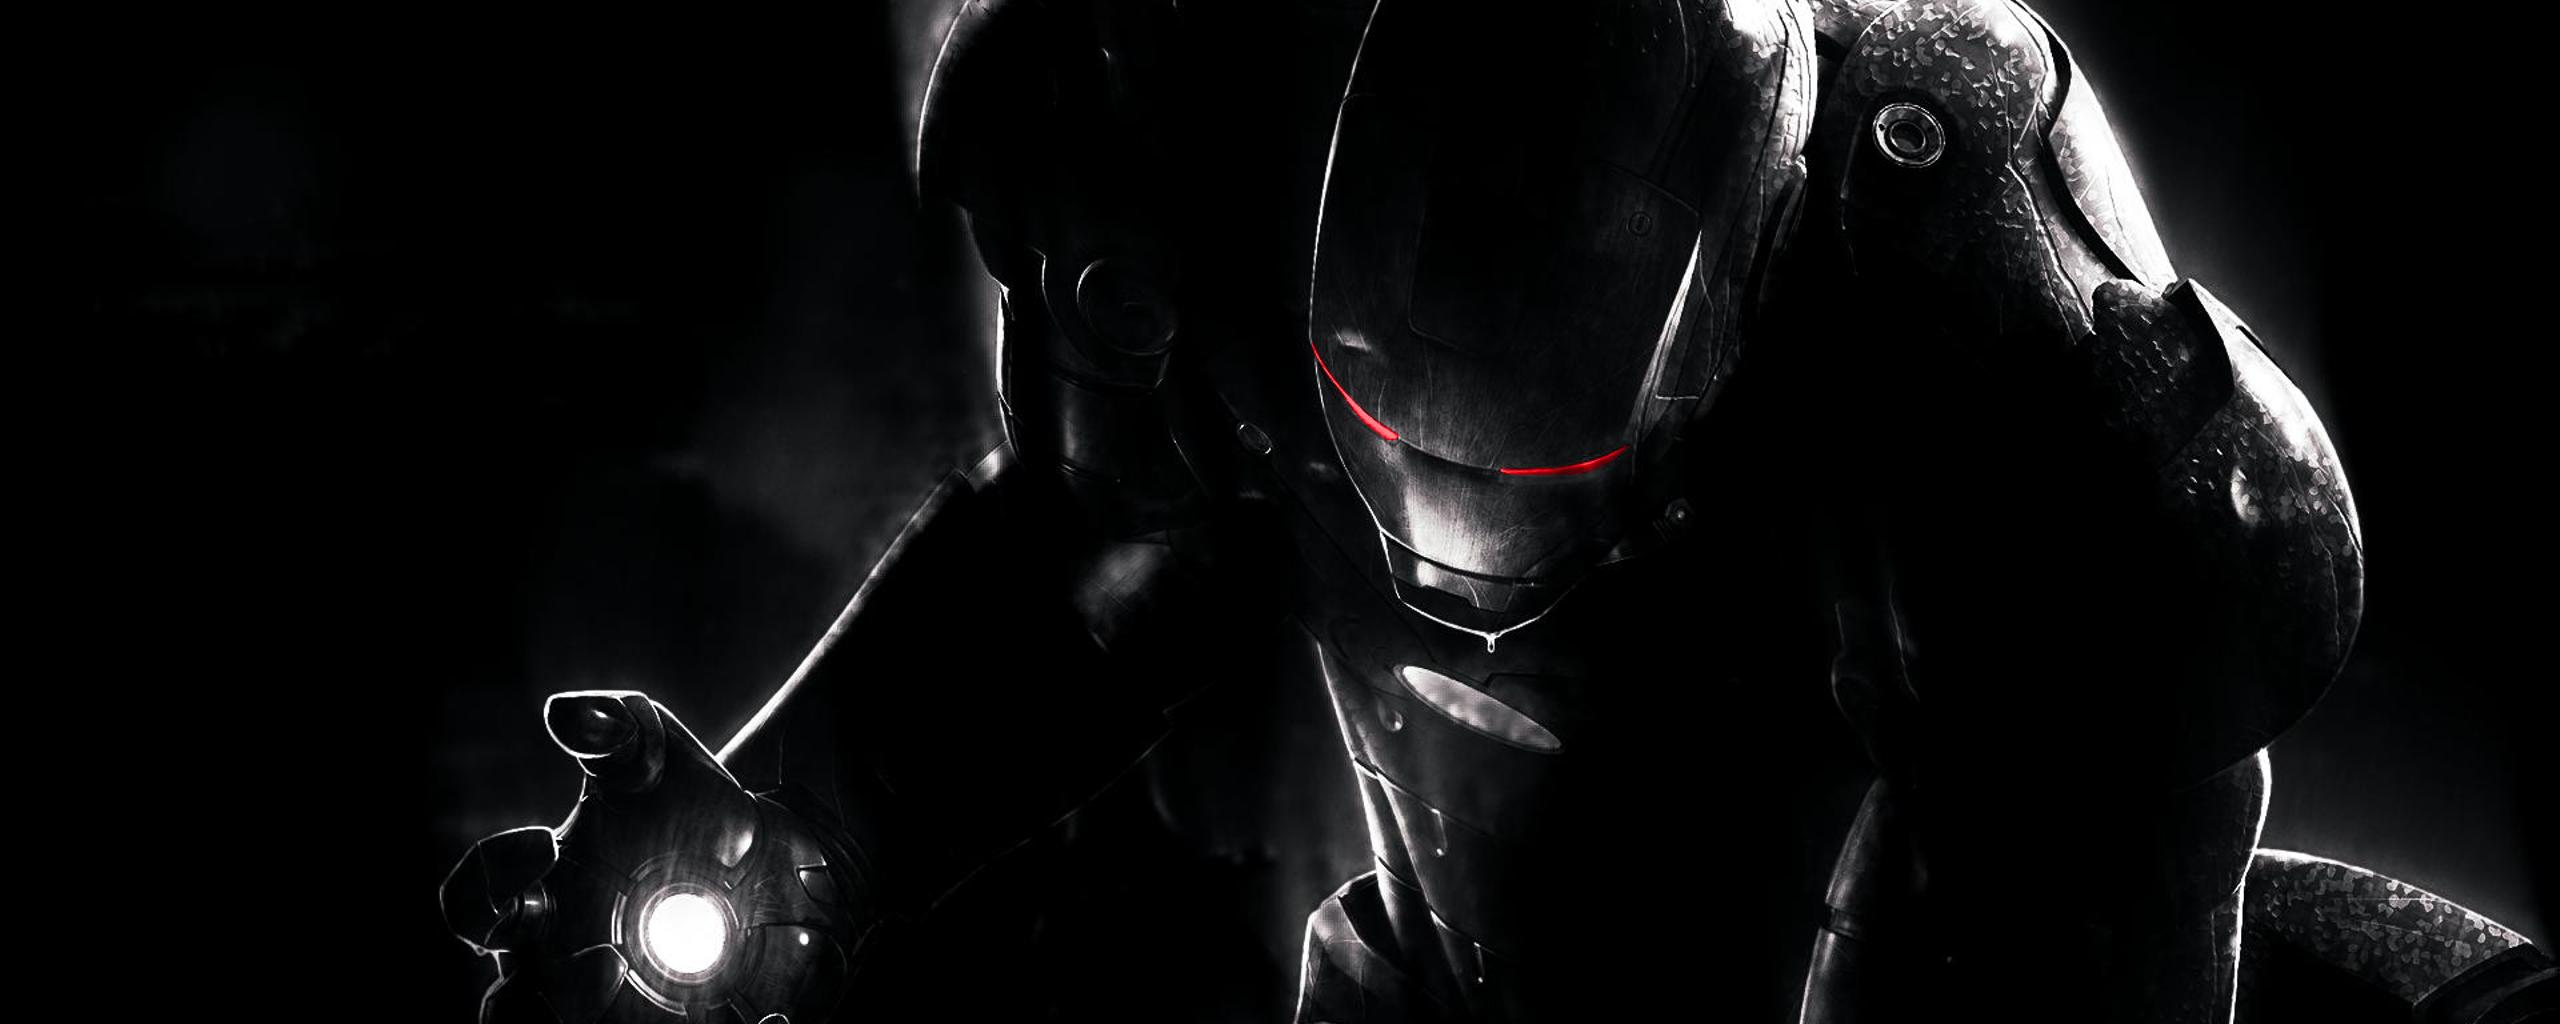 Download Wallpaper 2560x1024 Black Iron Man with red eyes